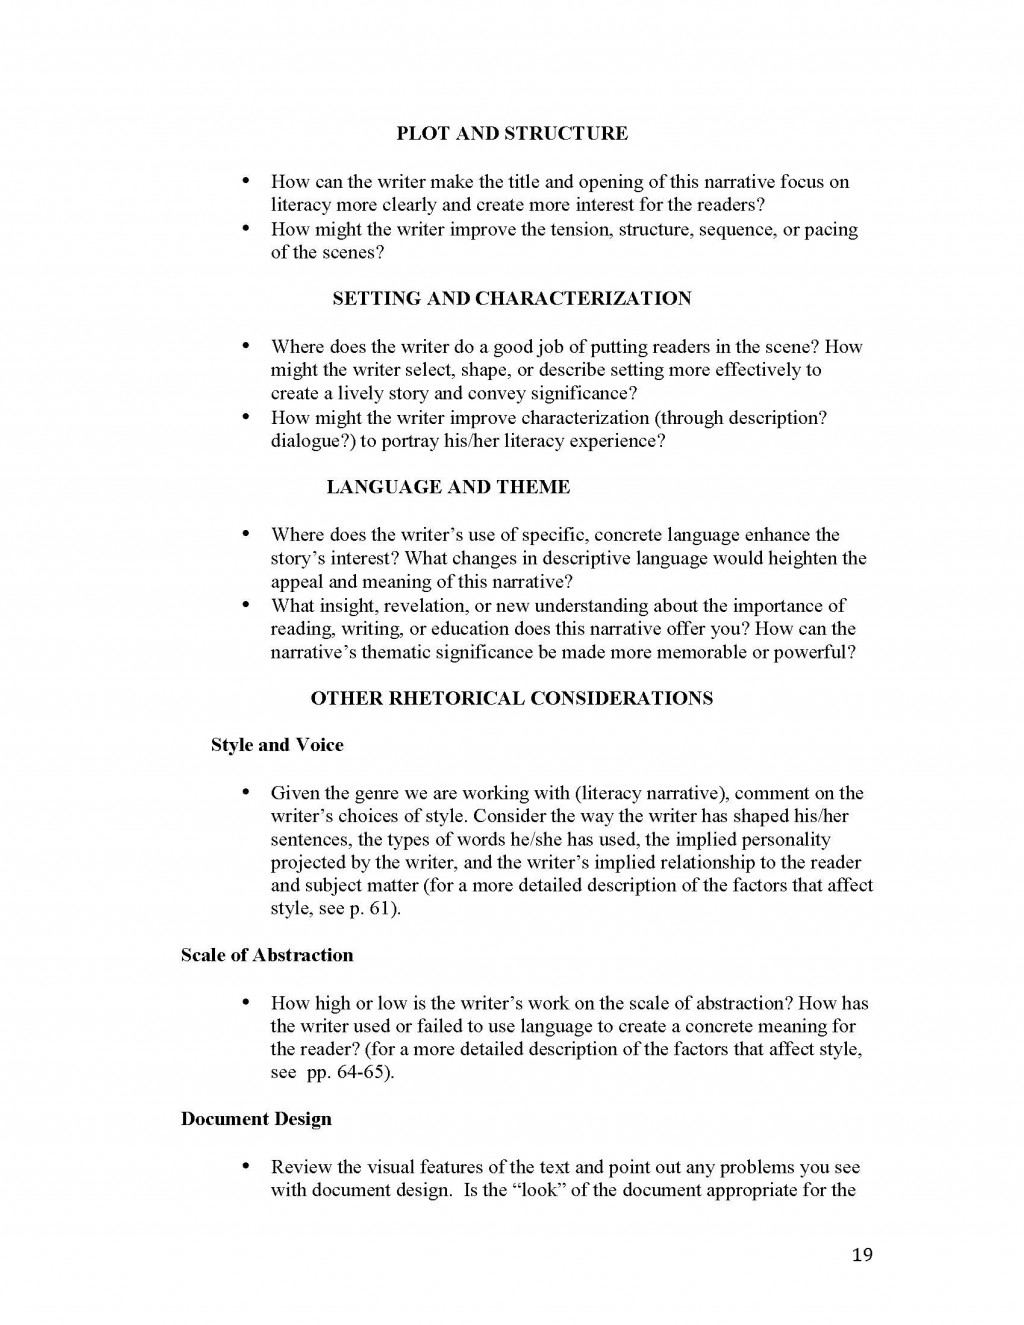 007 Essay Example Unit 1 Literacy Narrative Instructor Copy Page 19 Immigration Marvelous Introduction Reform Large